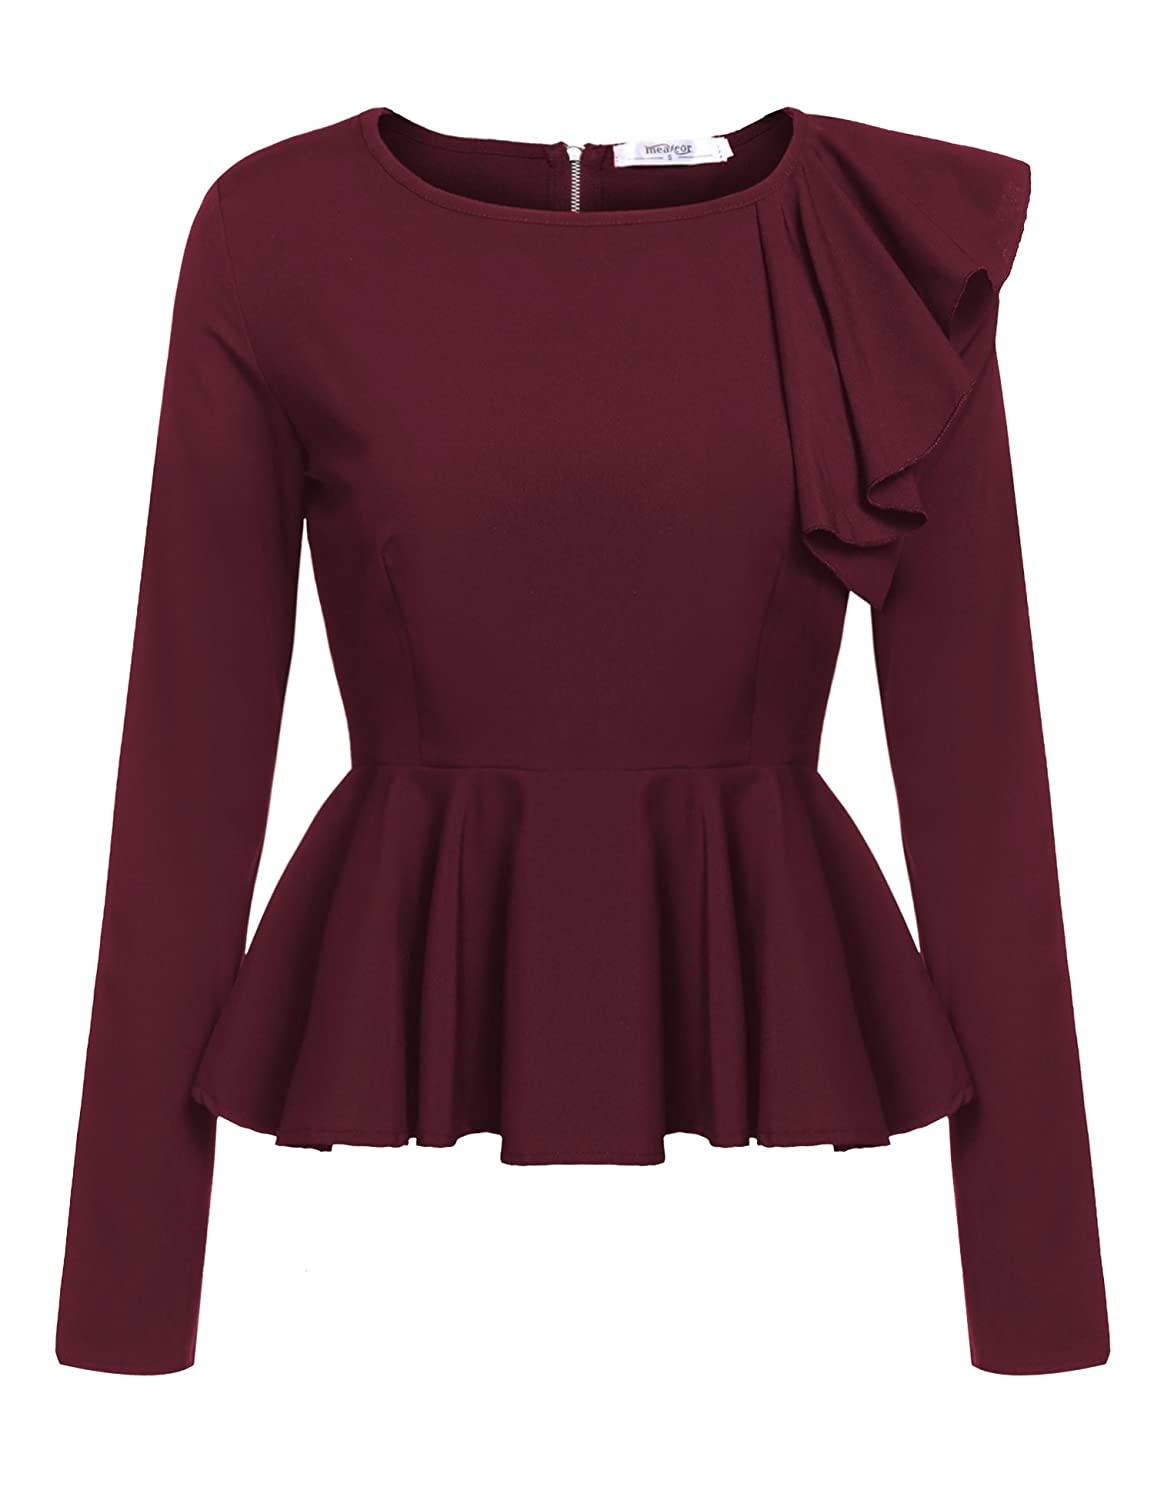 Meaneor Womens Ruffles Peplum Long Sleeve Dressy Blouse Tops At